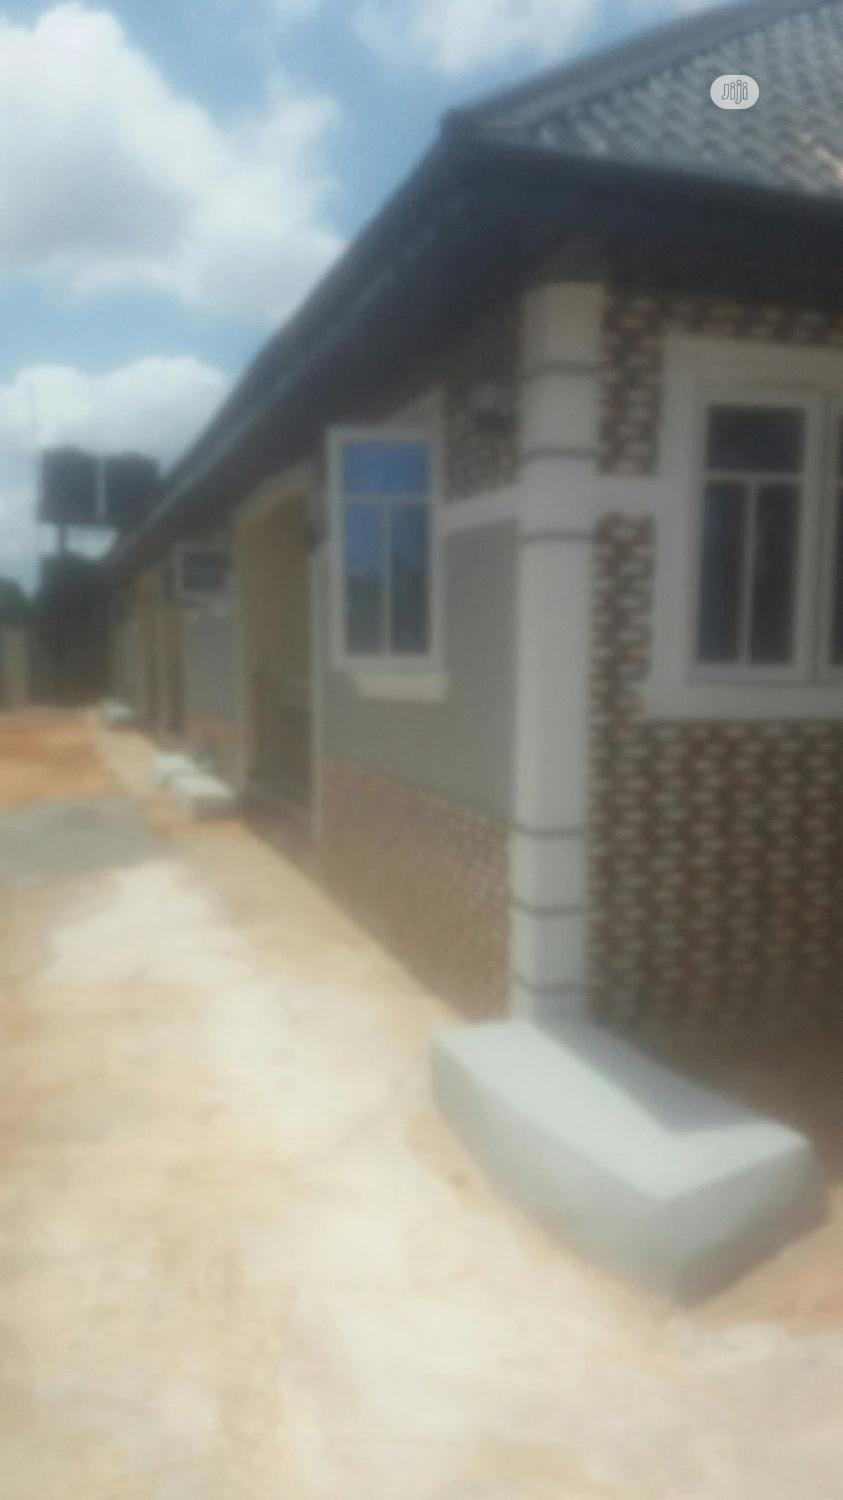 A Room And Parlour Self Contain To Let | Houses & Apartments For Rent for sale in Benin City, Edo State, Nigeria